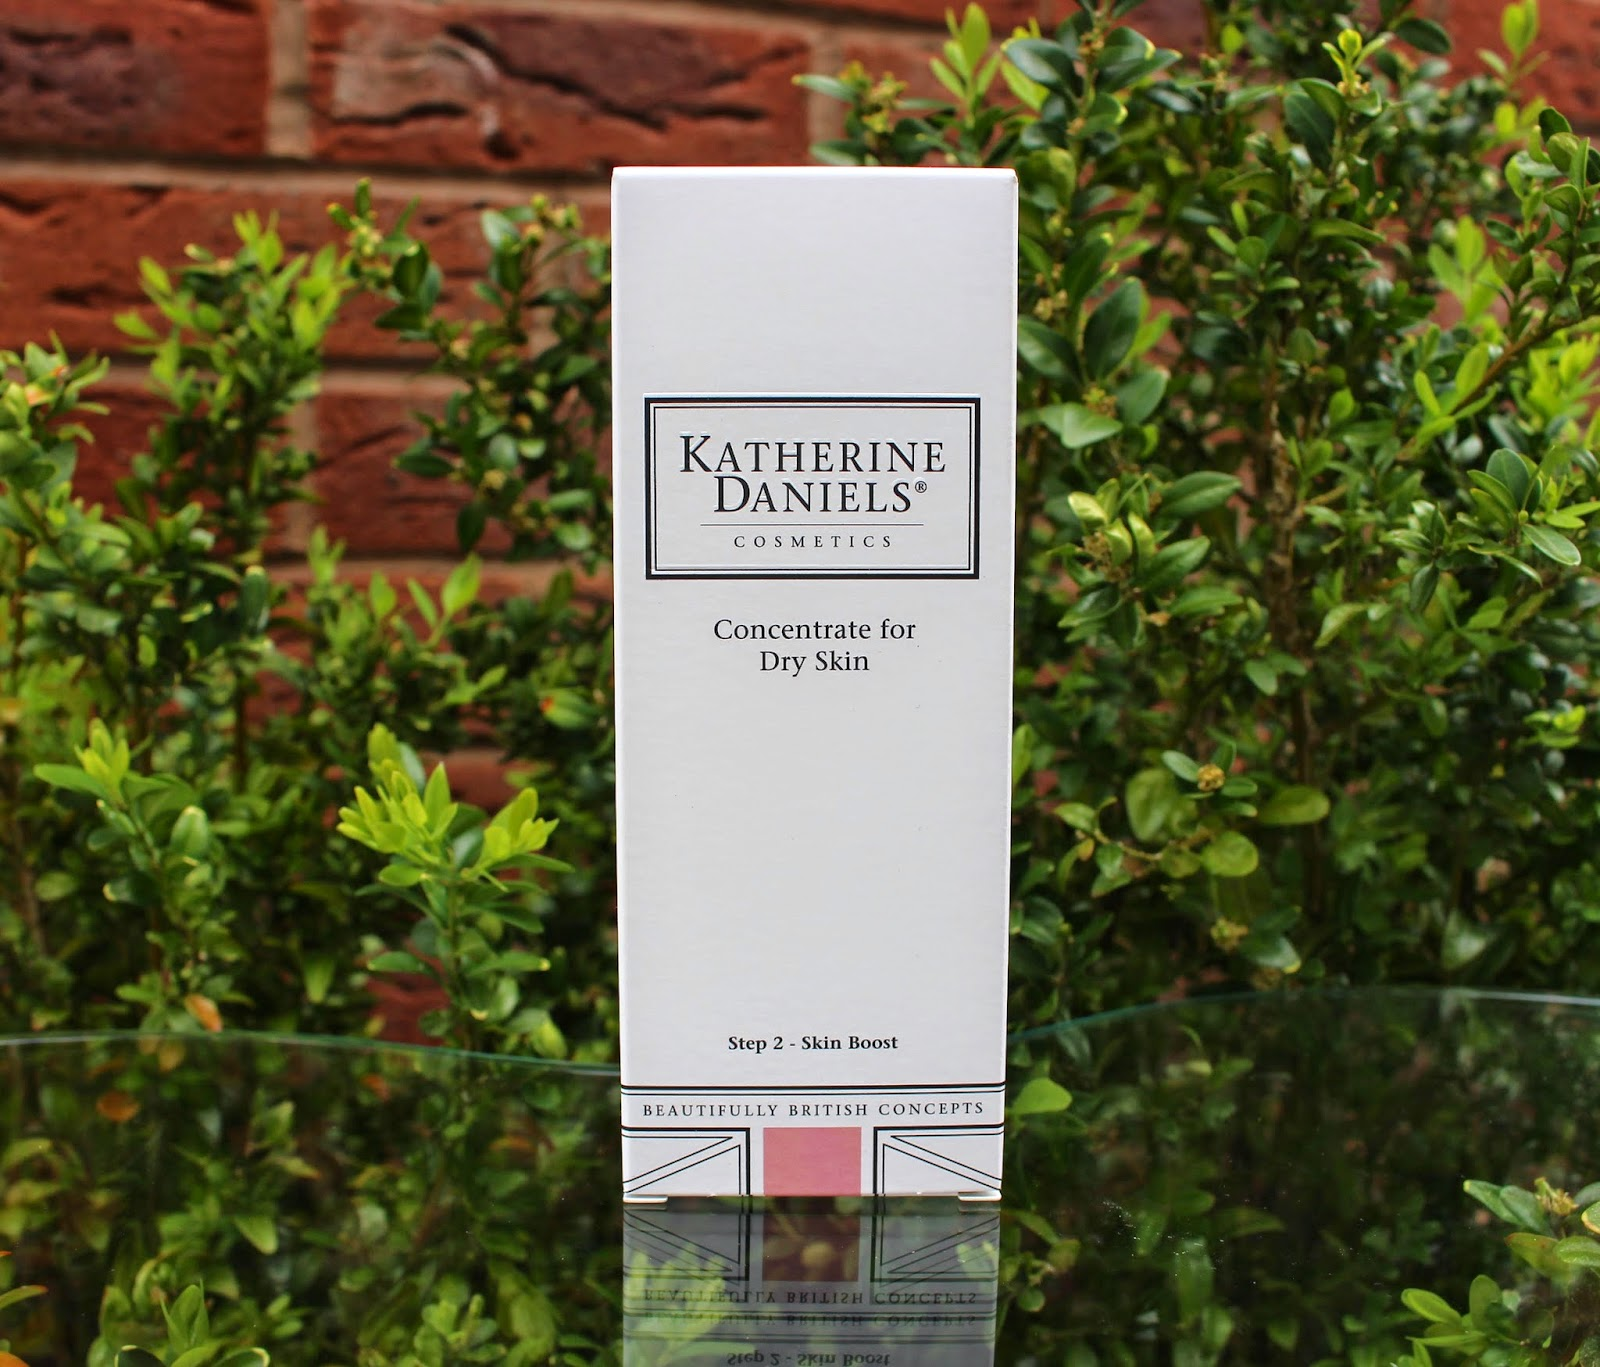 Katherine Daniels Concentrate For Dry Skin, Katherine Daniels, Concentrate For Dry Skin, uk beauty blog, uk fashion blog, dry skin, through chelsea's eyes, review,